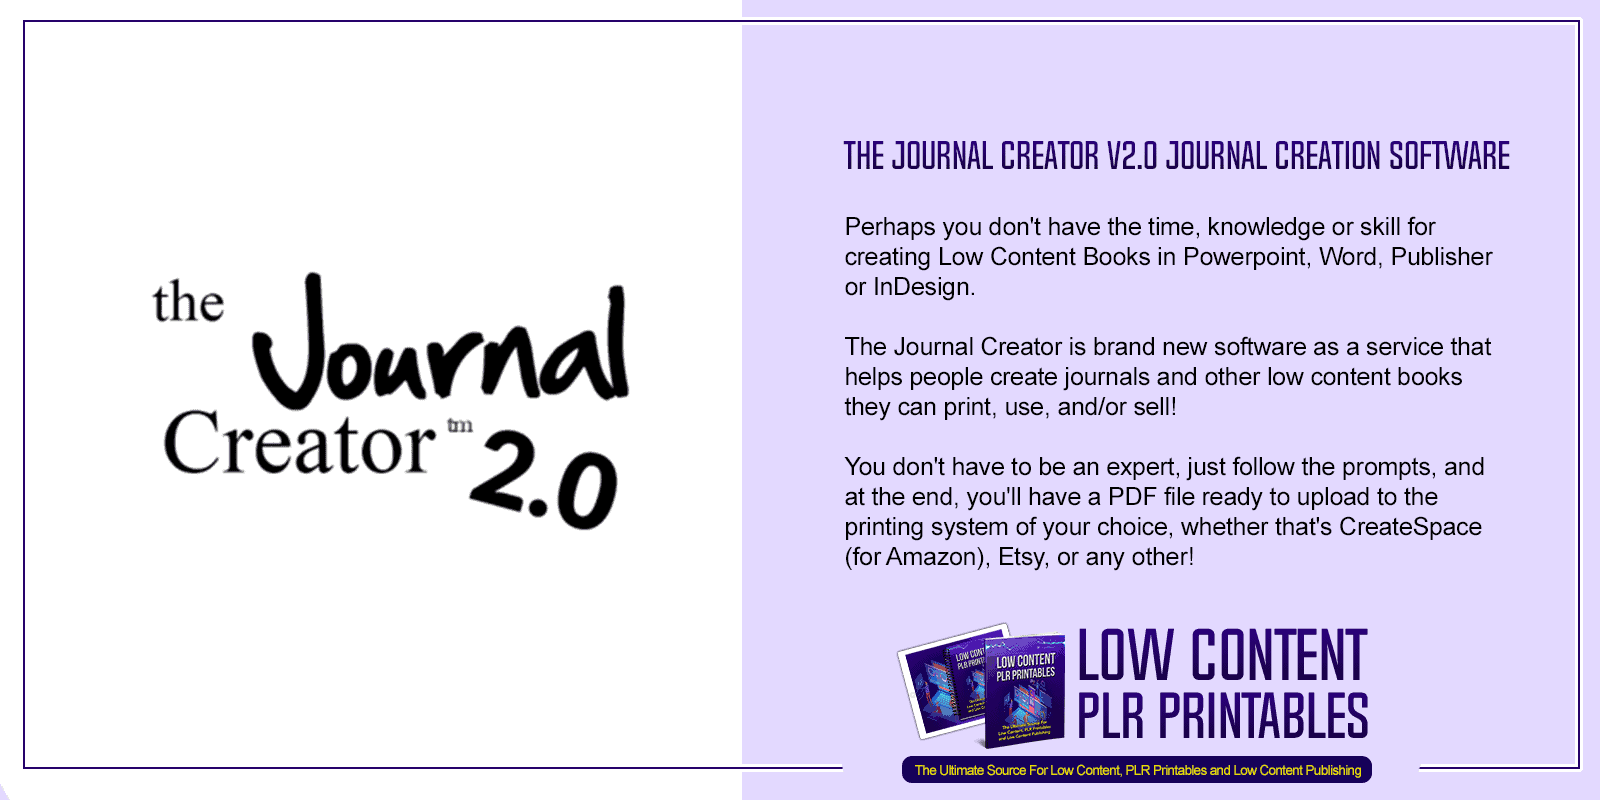 The Journal Creator V2.0 Journal Creation Software